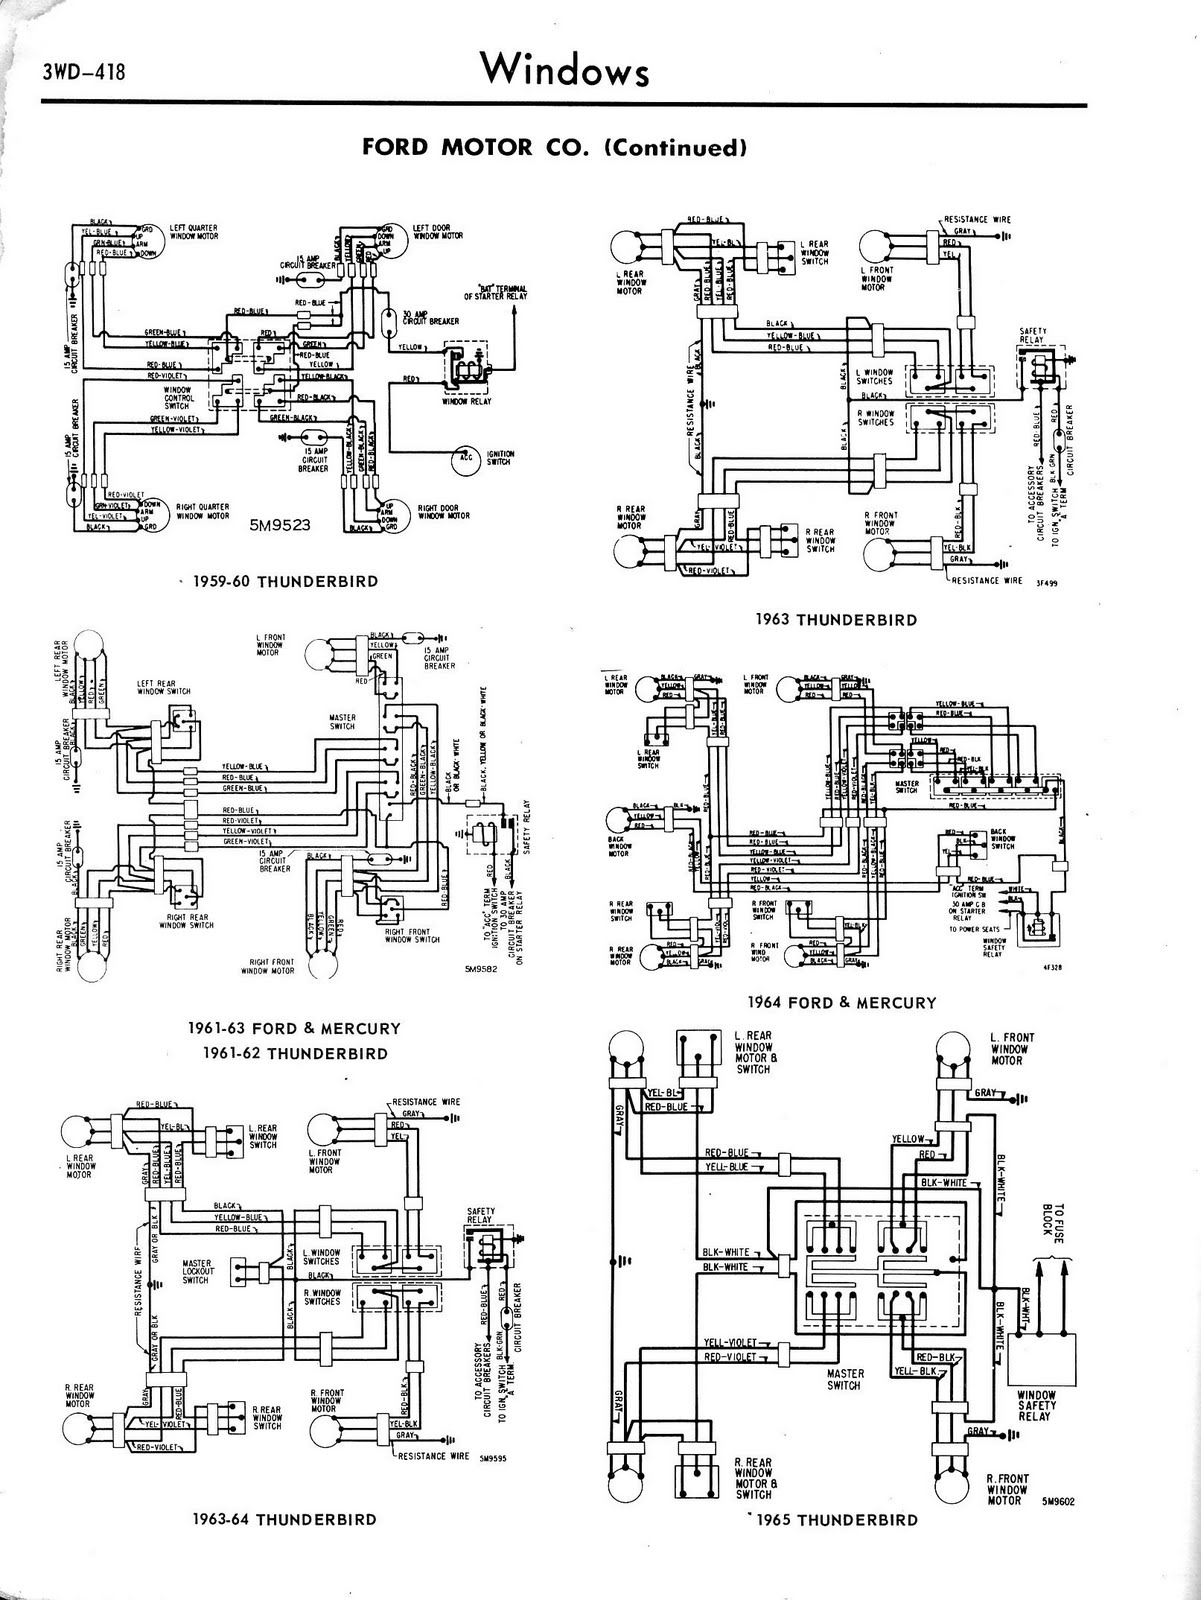 Fuse Diagram For A 2003 Echo Toyota Pickup Box Electric Windows Great Design Of 1964 Thunderbird Panel Schematics Wiring Diagrams U2022 Rh Parntesis Co 2004 Corolla 2000 Solara